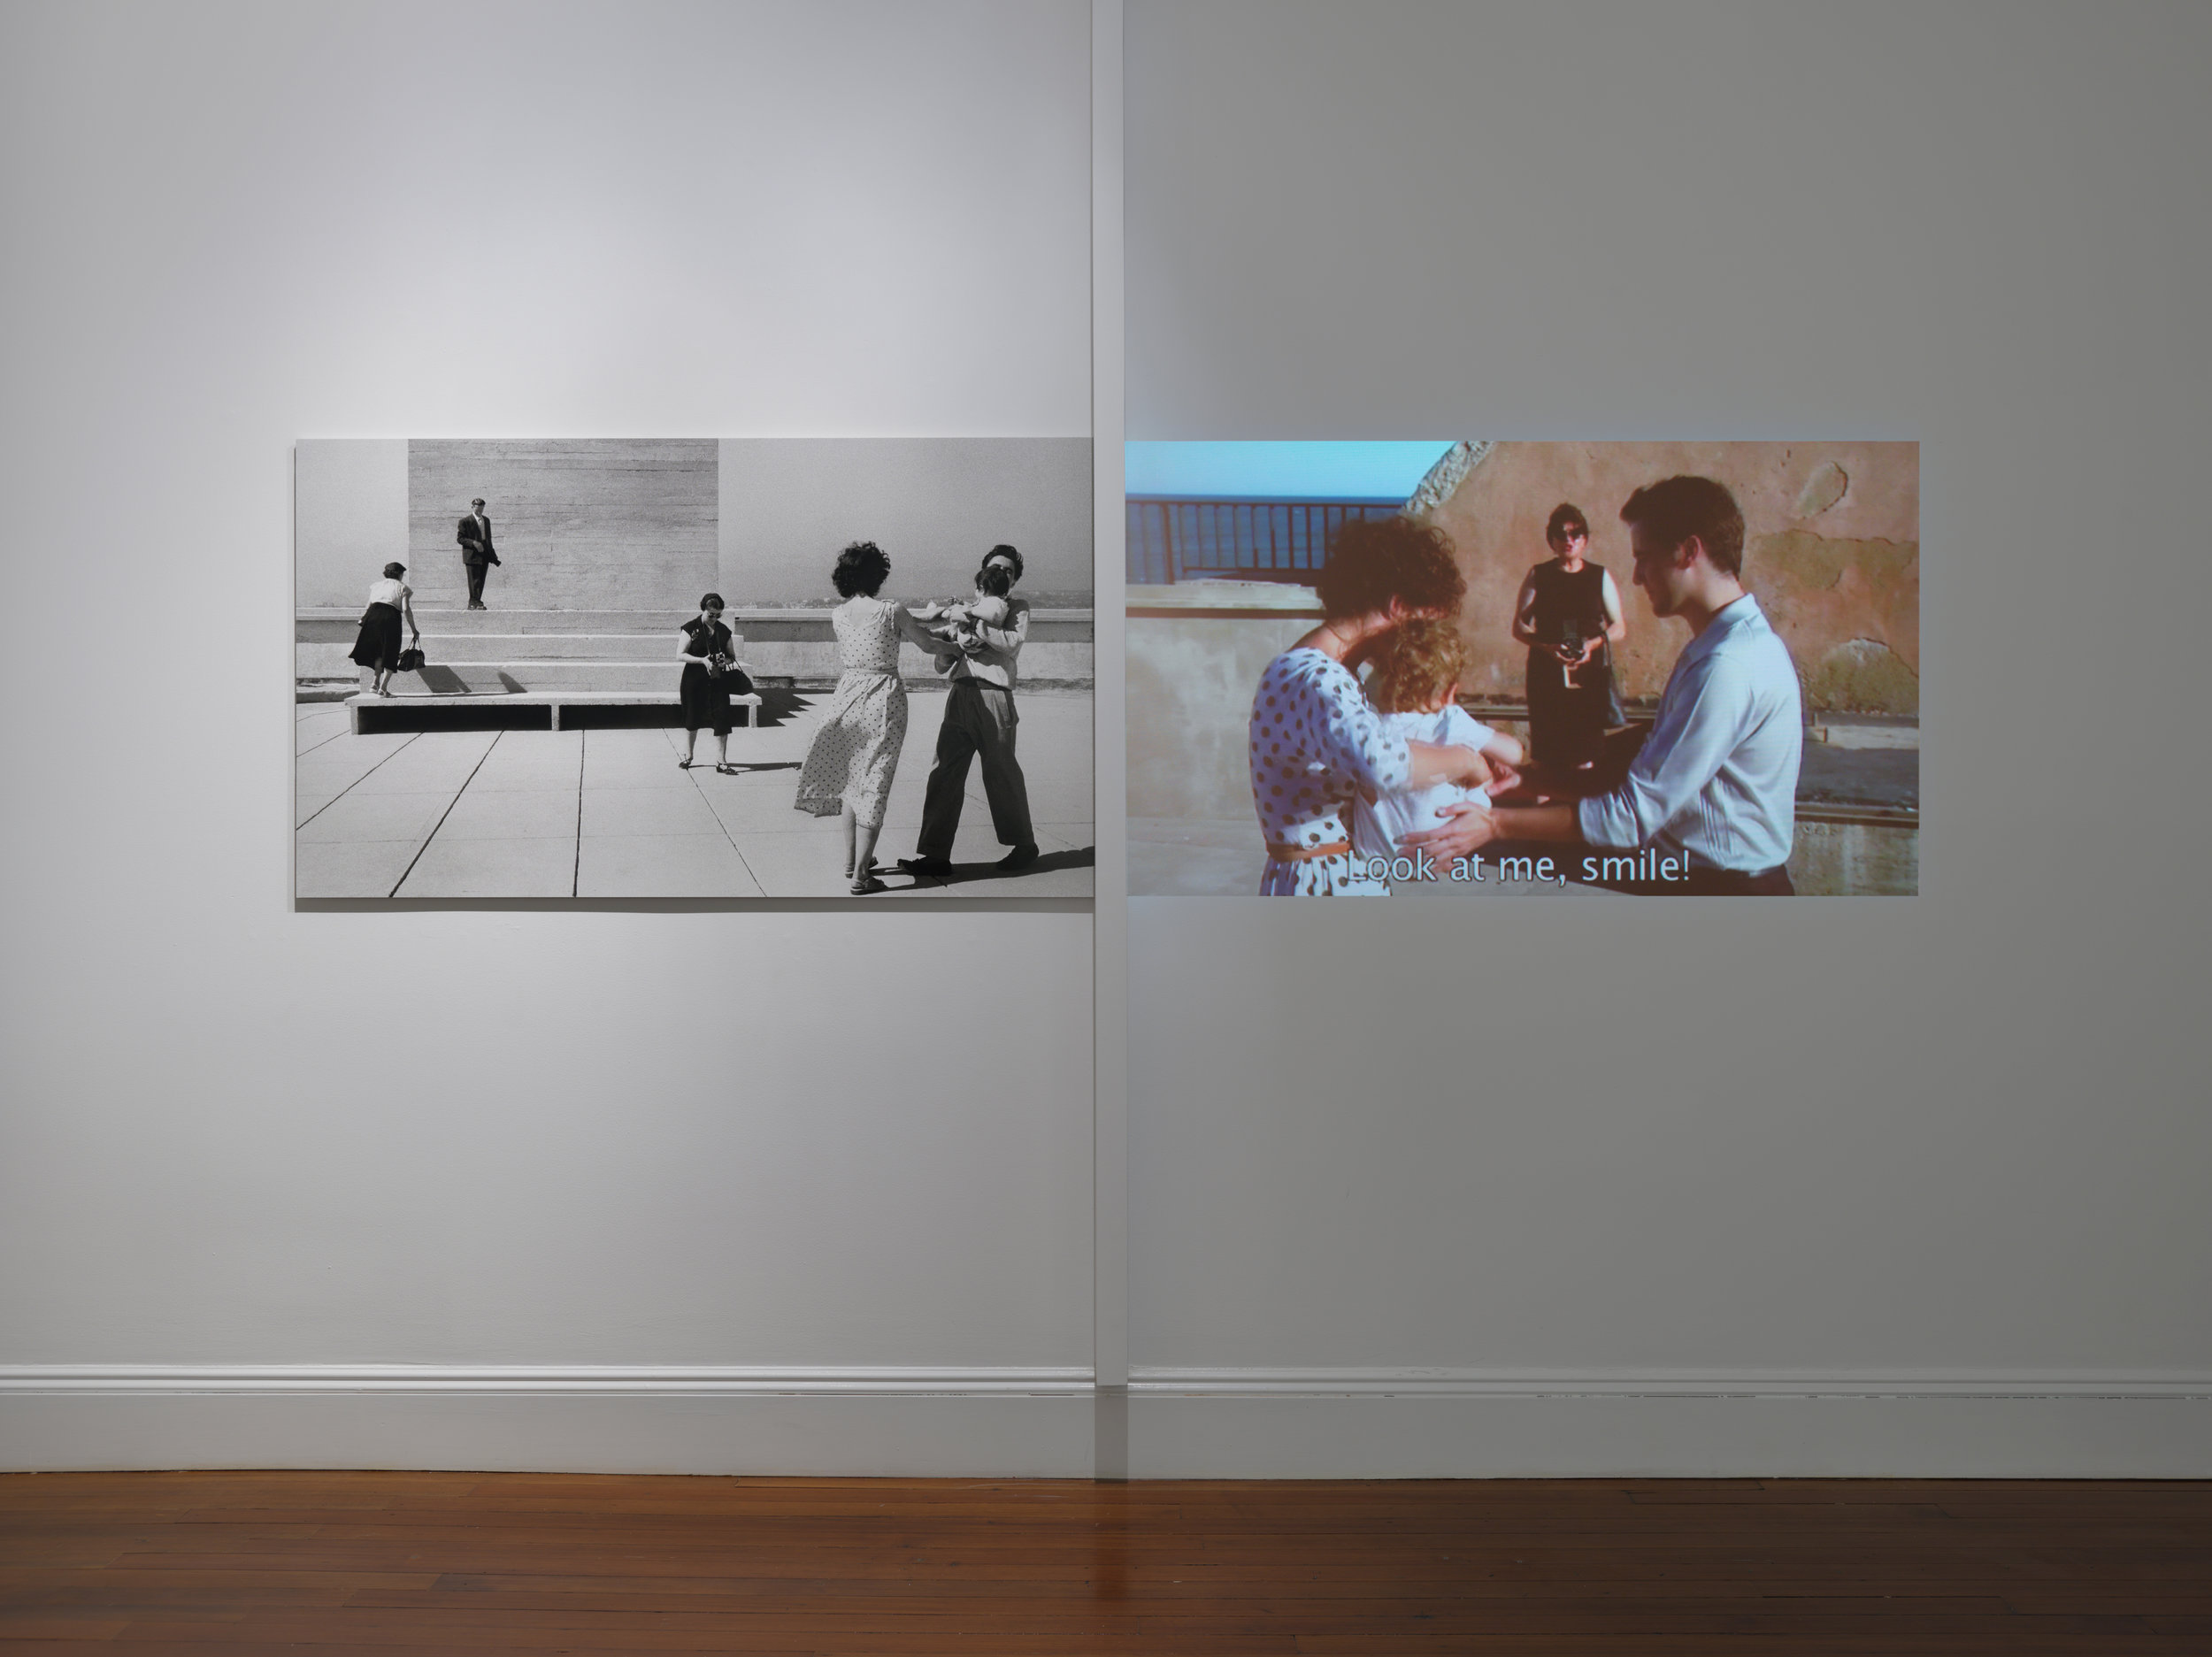 La terrasse, 2012. This installation includes a photo print and video frame, side by side, in the same dimensions. Users can listen to the audio using wireless headphones. Agnes Varda, Installation view, 2017 Blum & Poe, New York Photo: Genevieve Hanson Courtesy of the artist and Blum & Poe, Los Angeles/New York/Tokyo